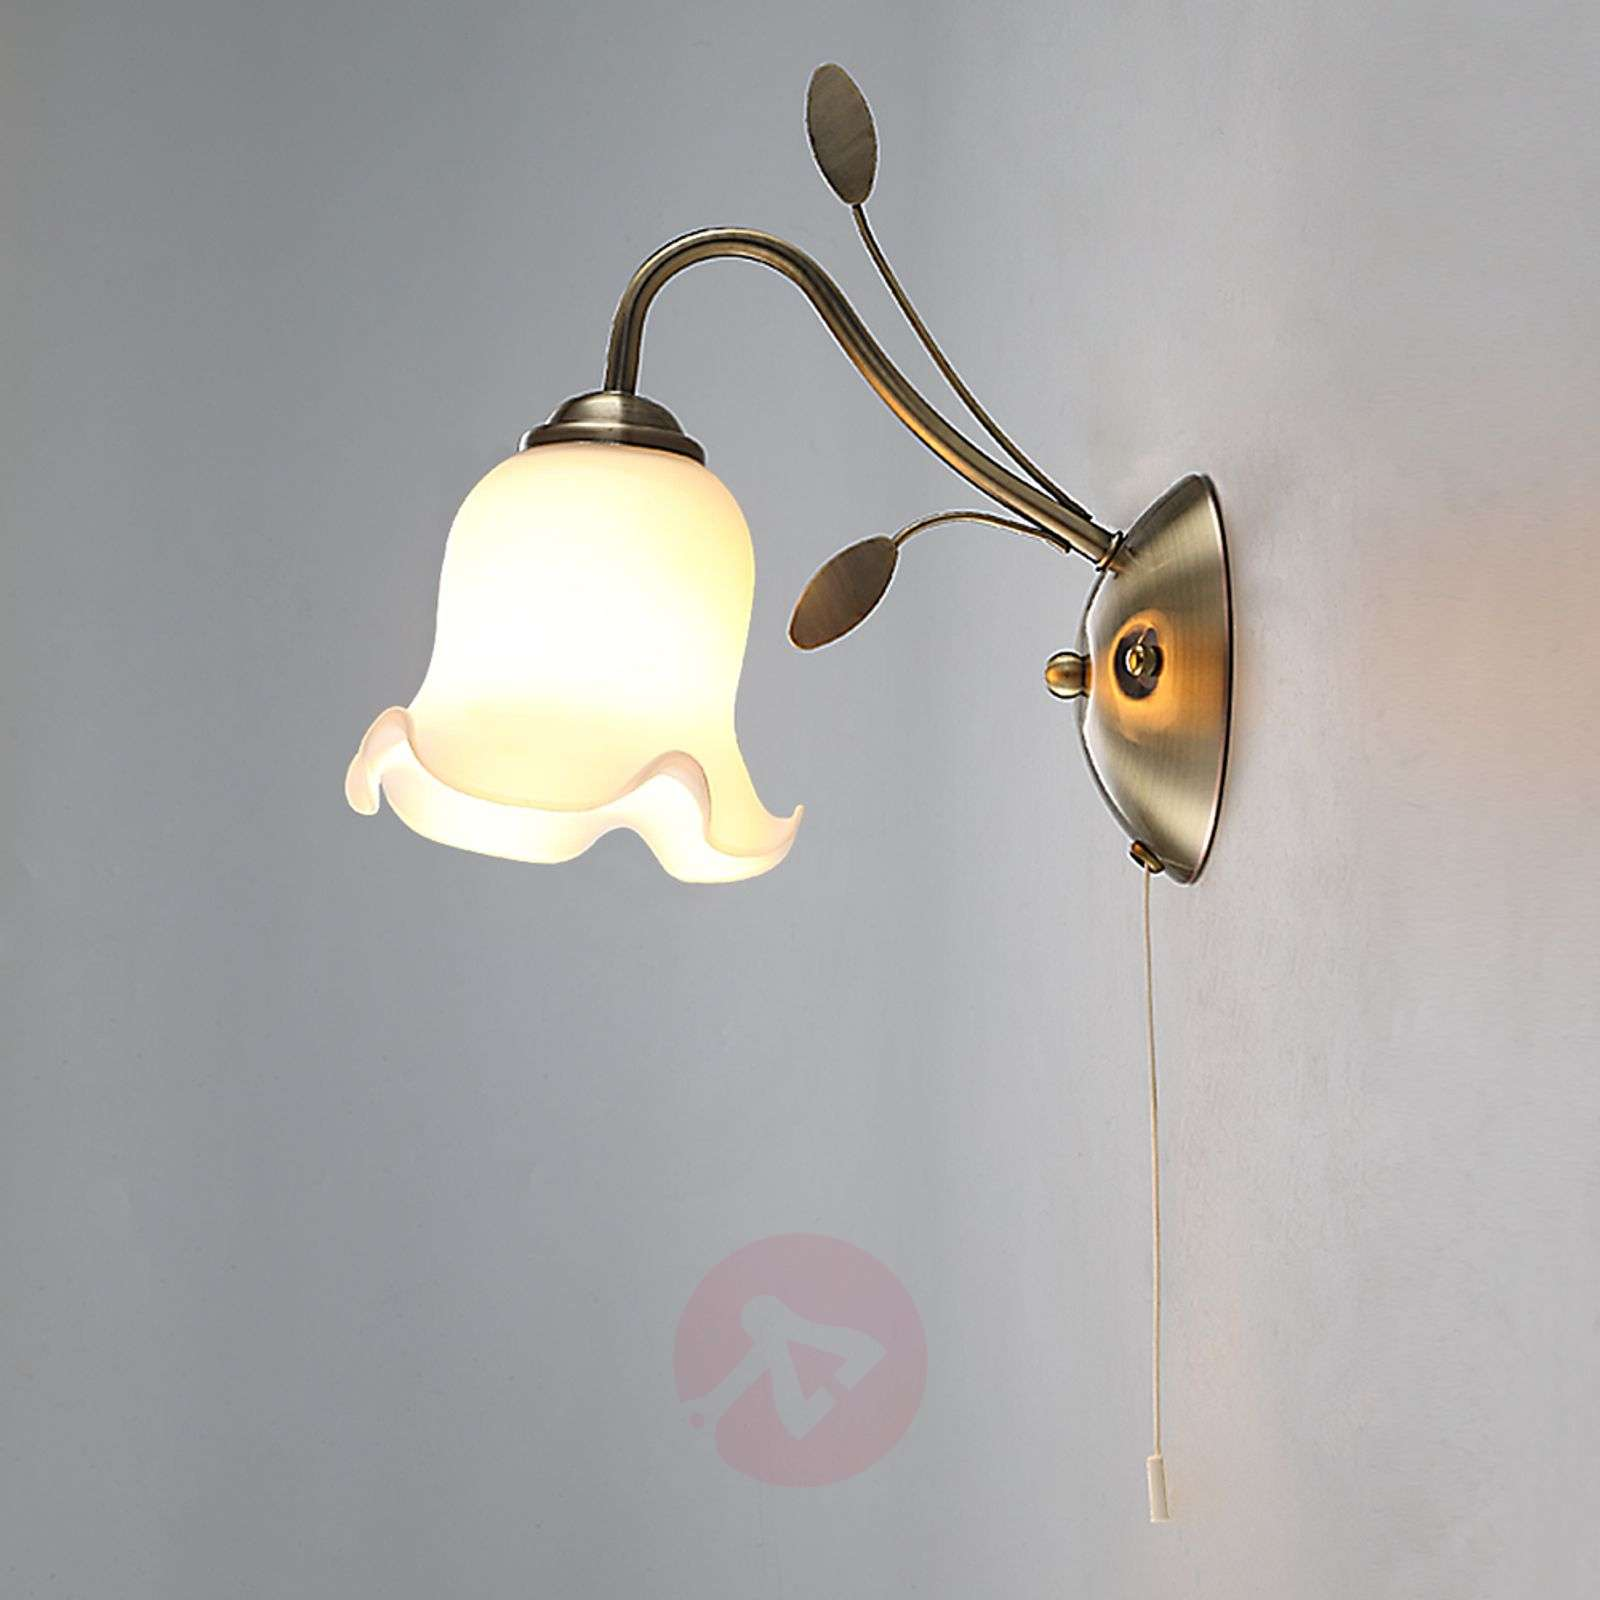 Romantic wall light Matea-9620756-02